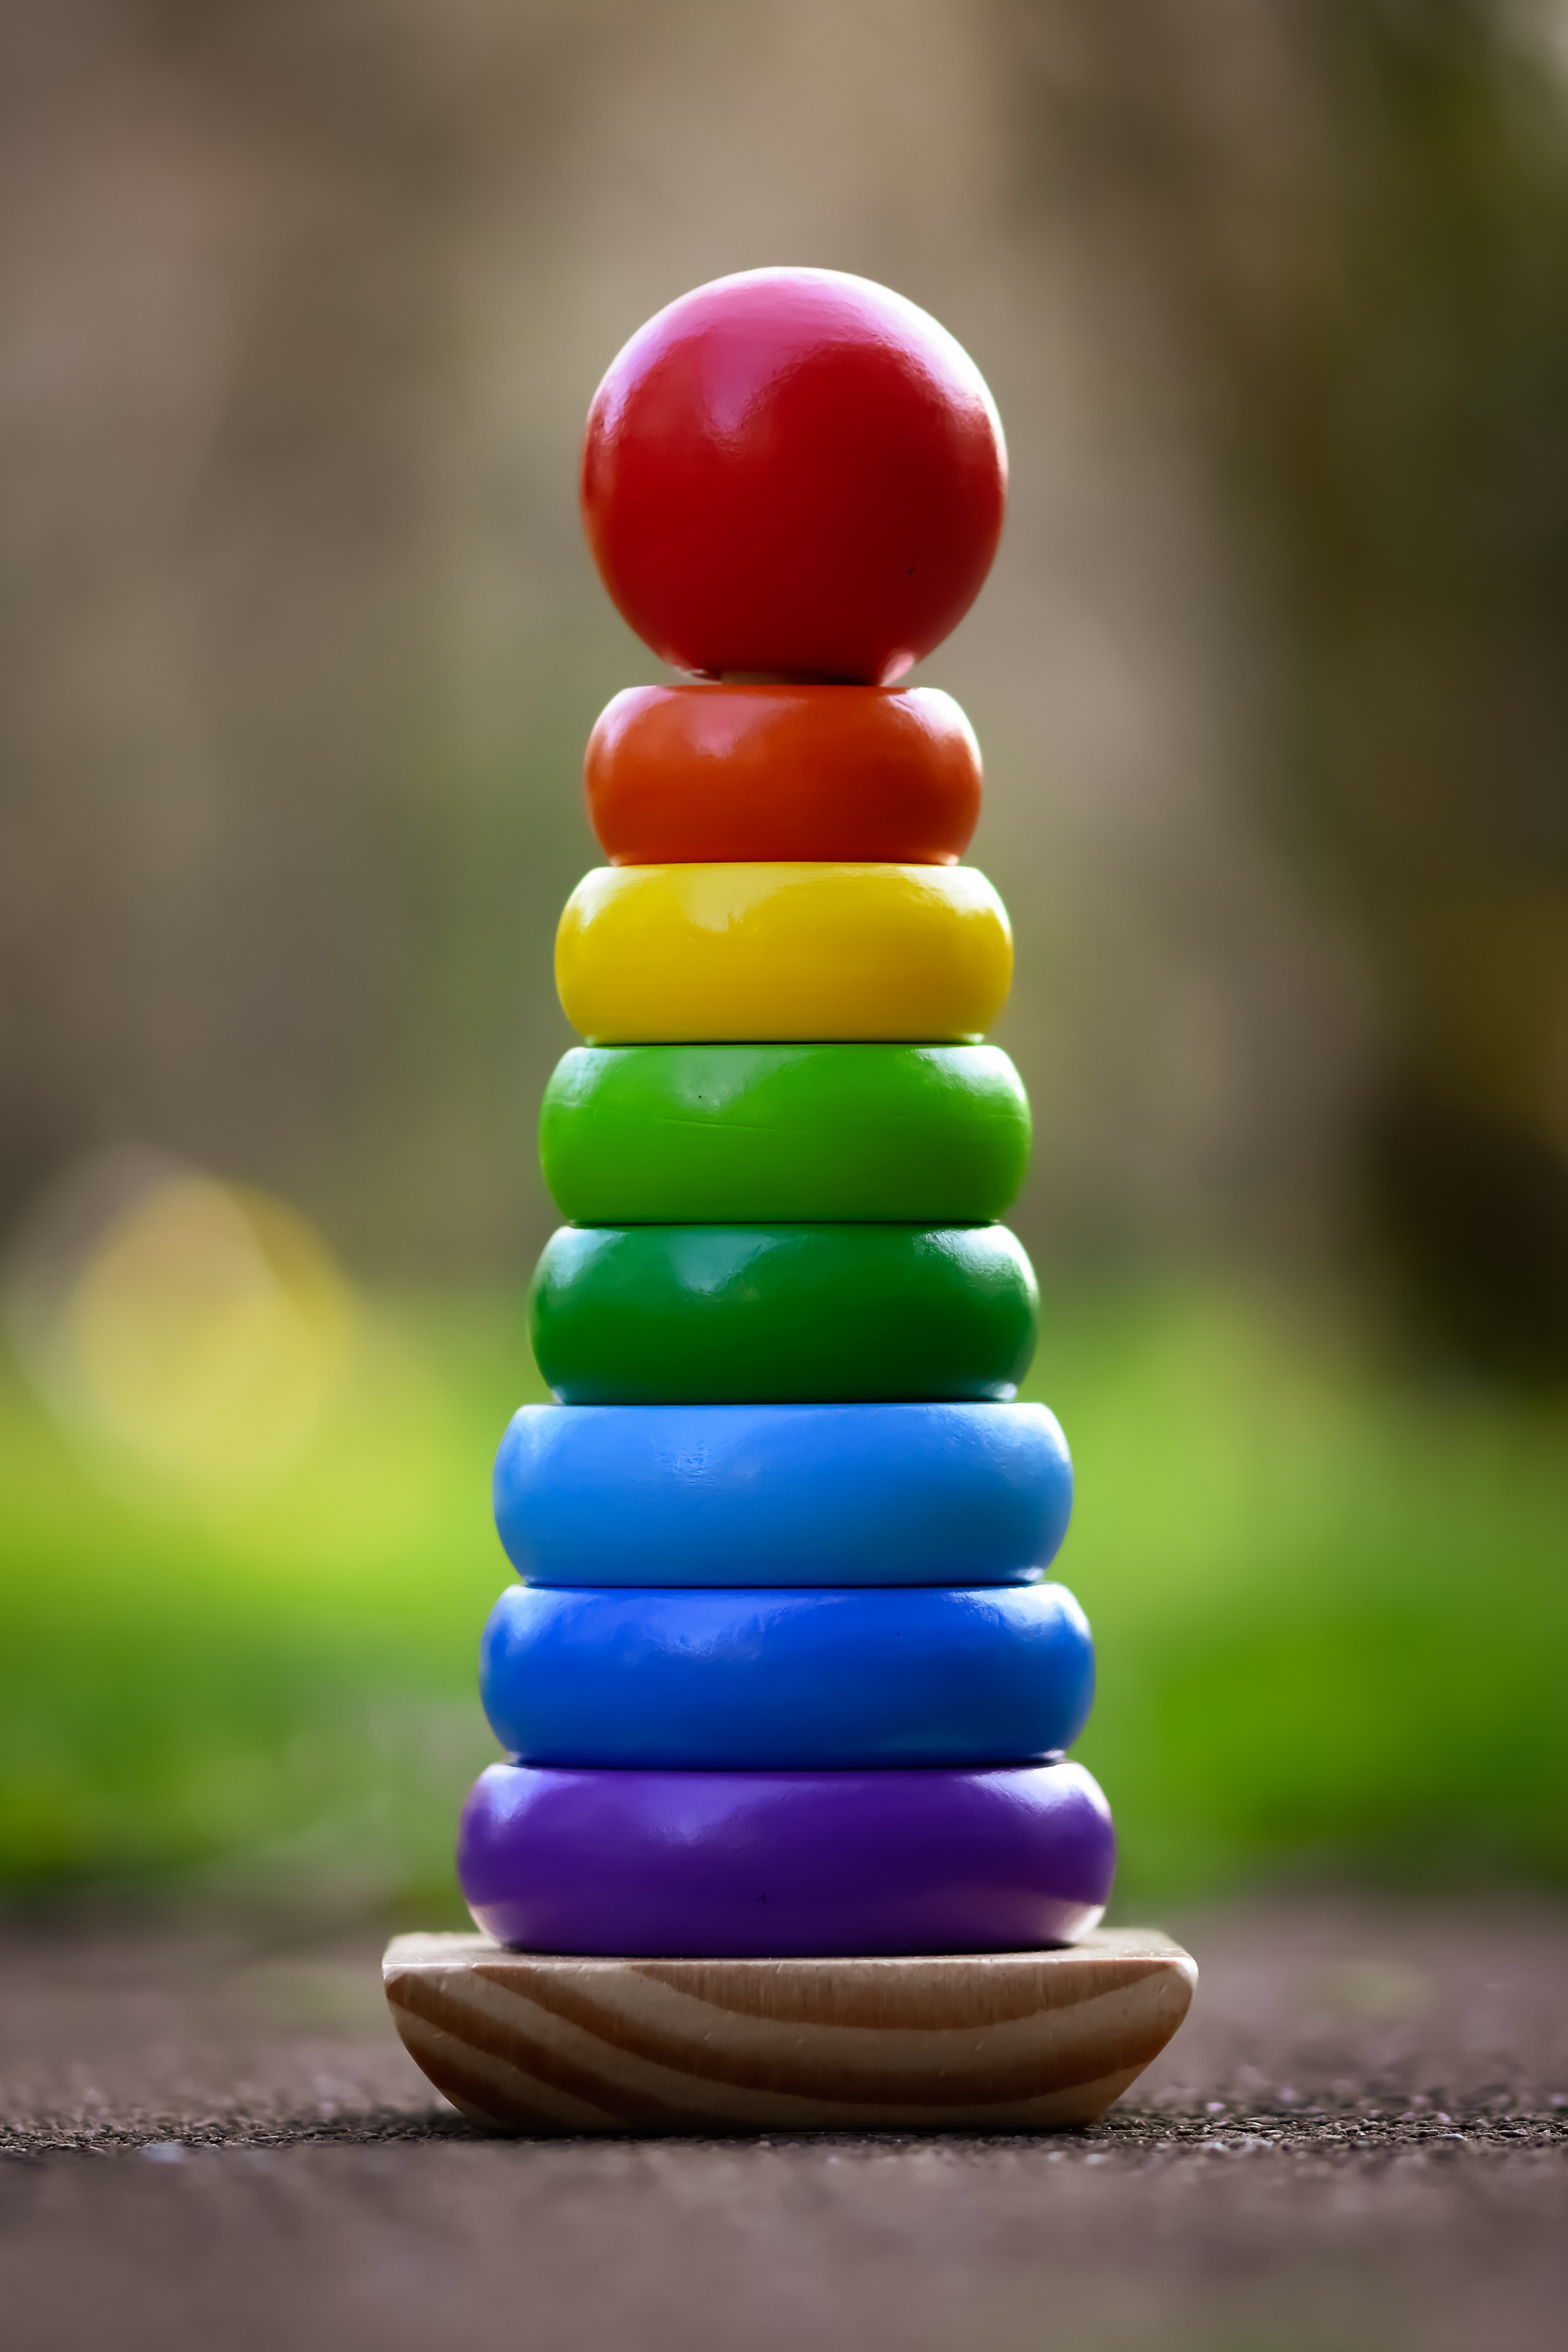 Colorful color palette toys tower pyramid wood stack